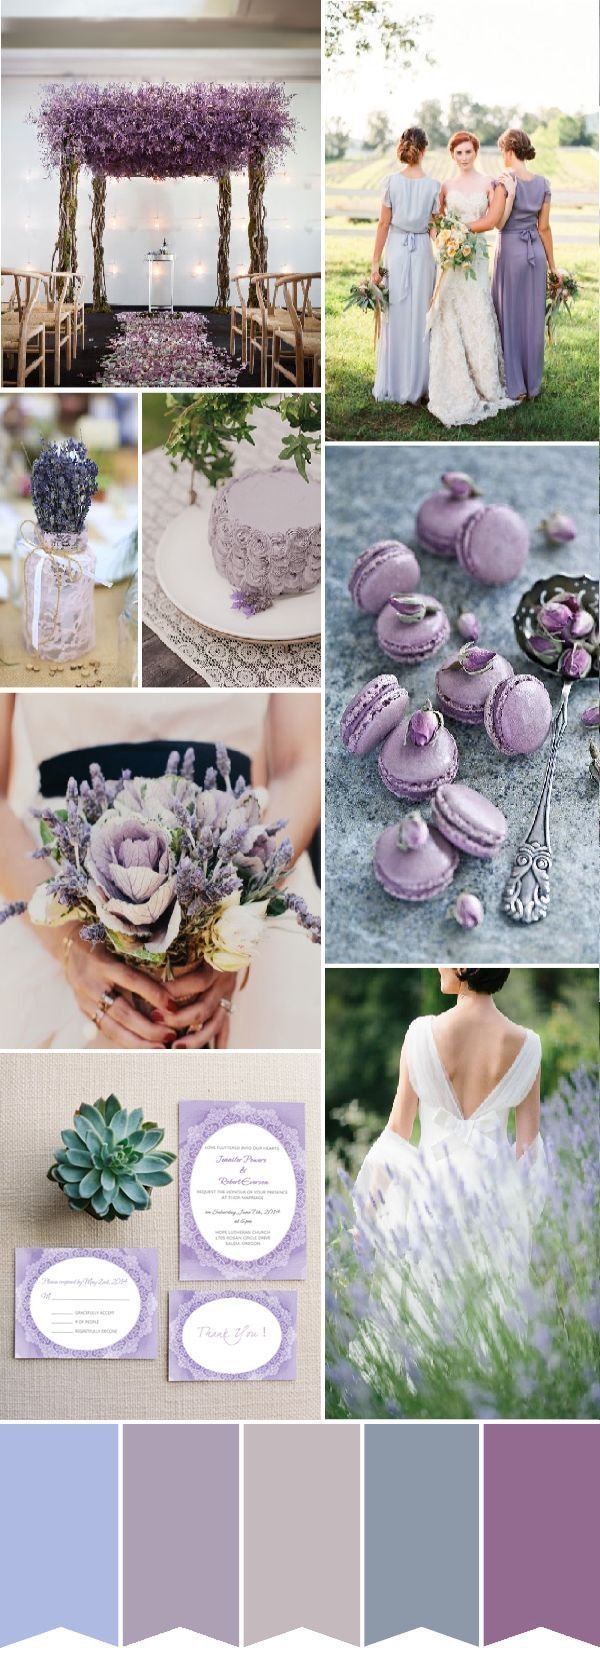 shades of purple and lavender wedding color ideas and wedding invitations